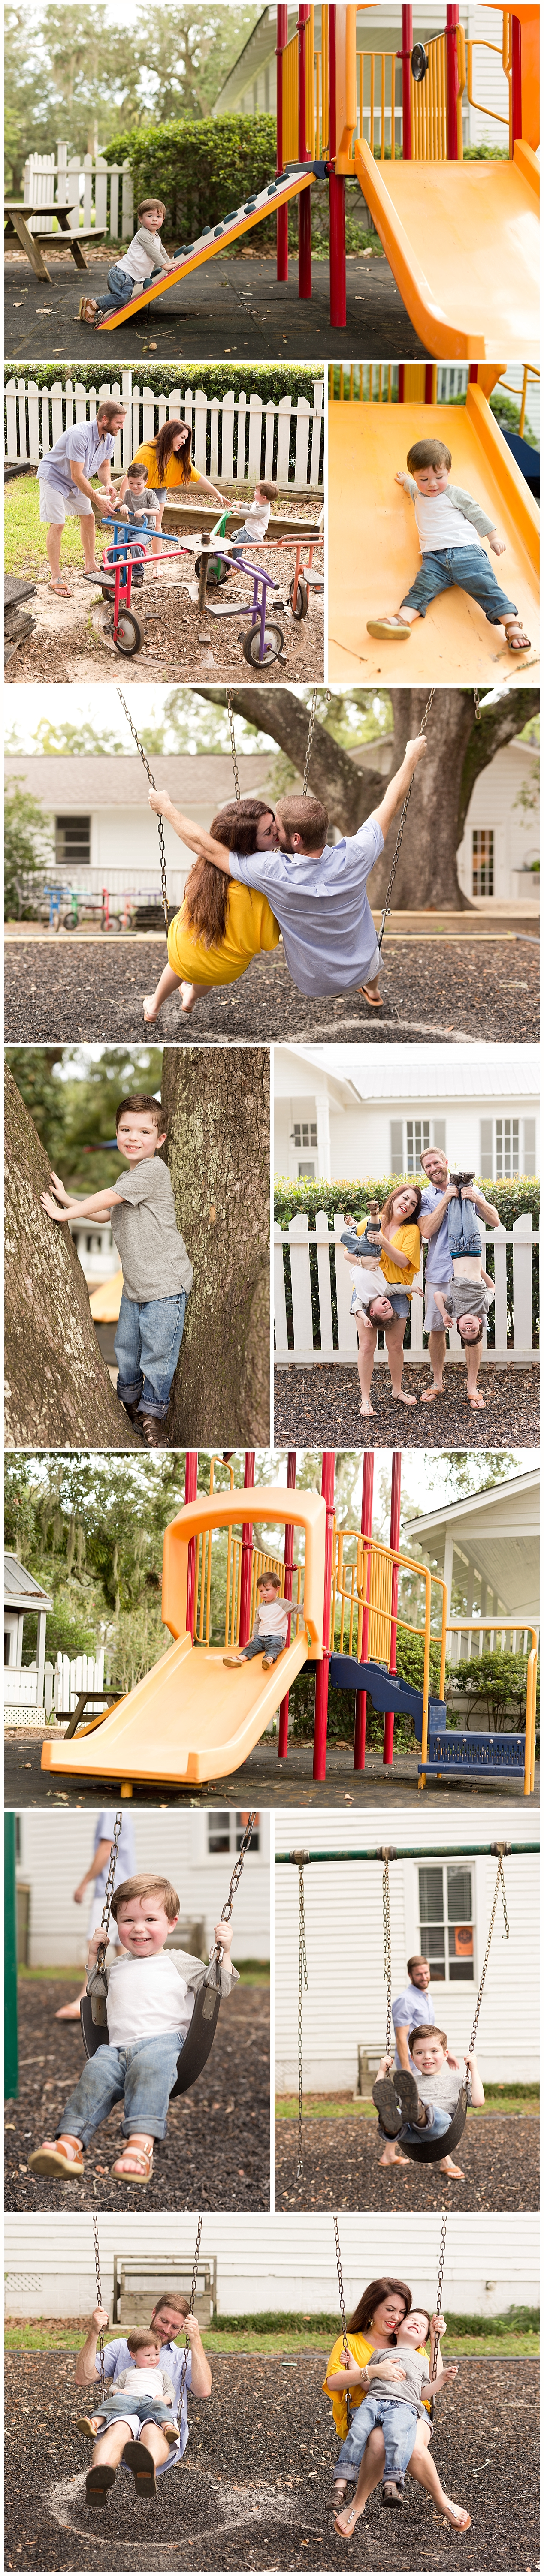 fun family pictures on playground - Ocean Springs family photos